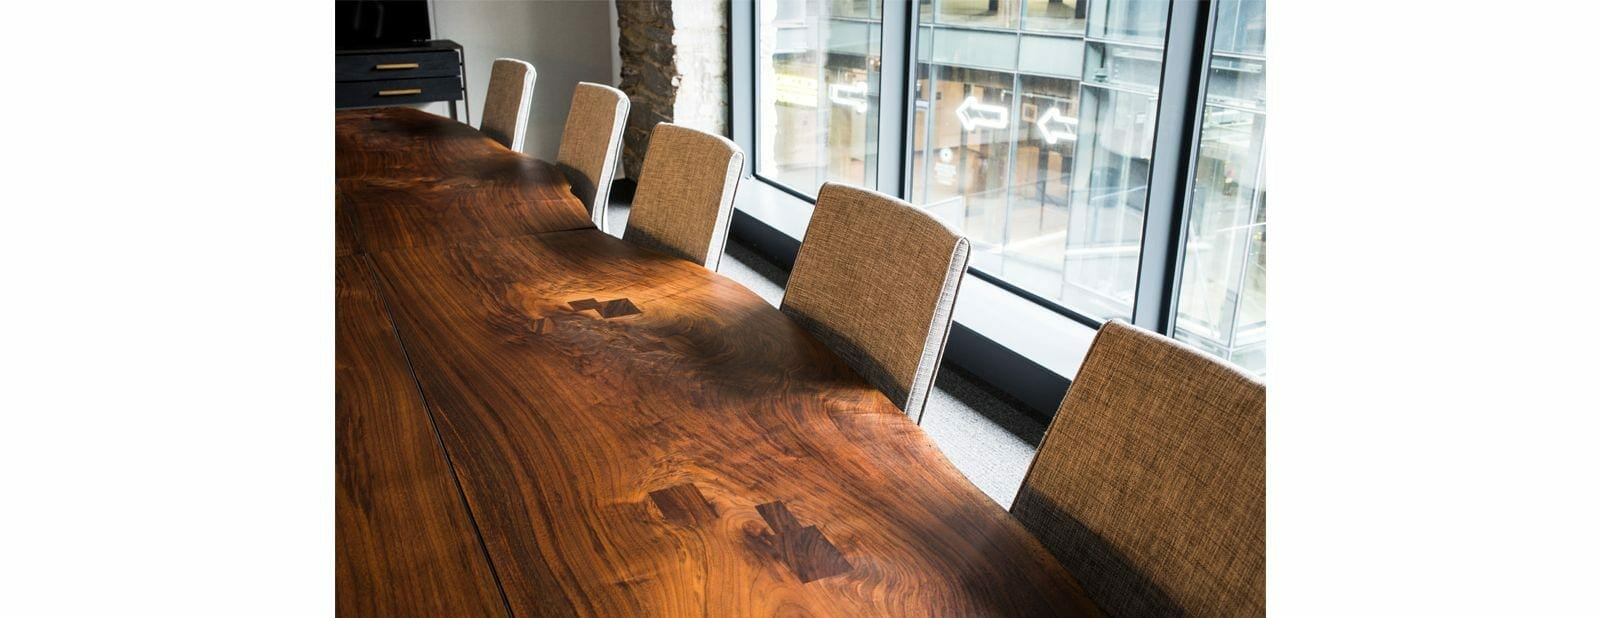 empire office conference table detail